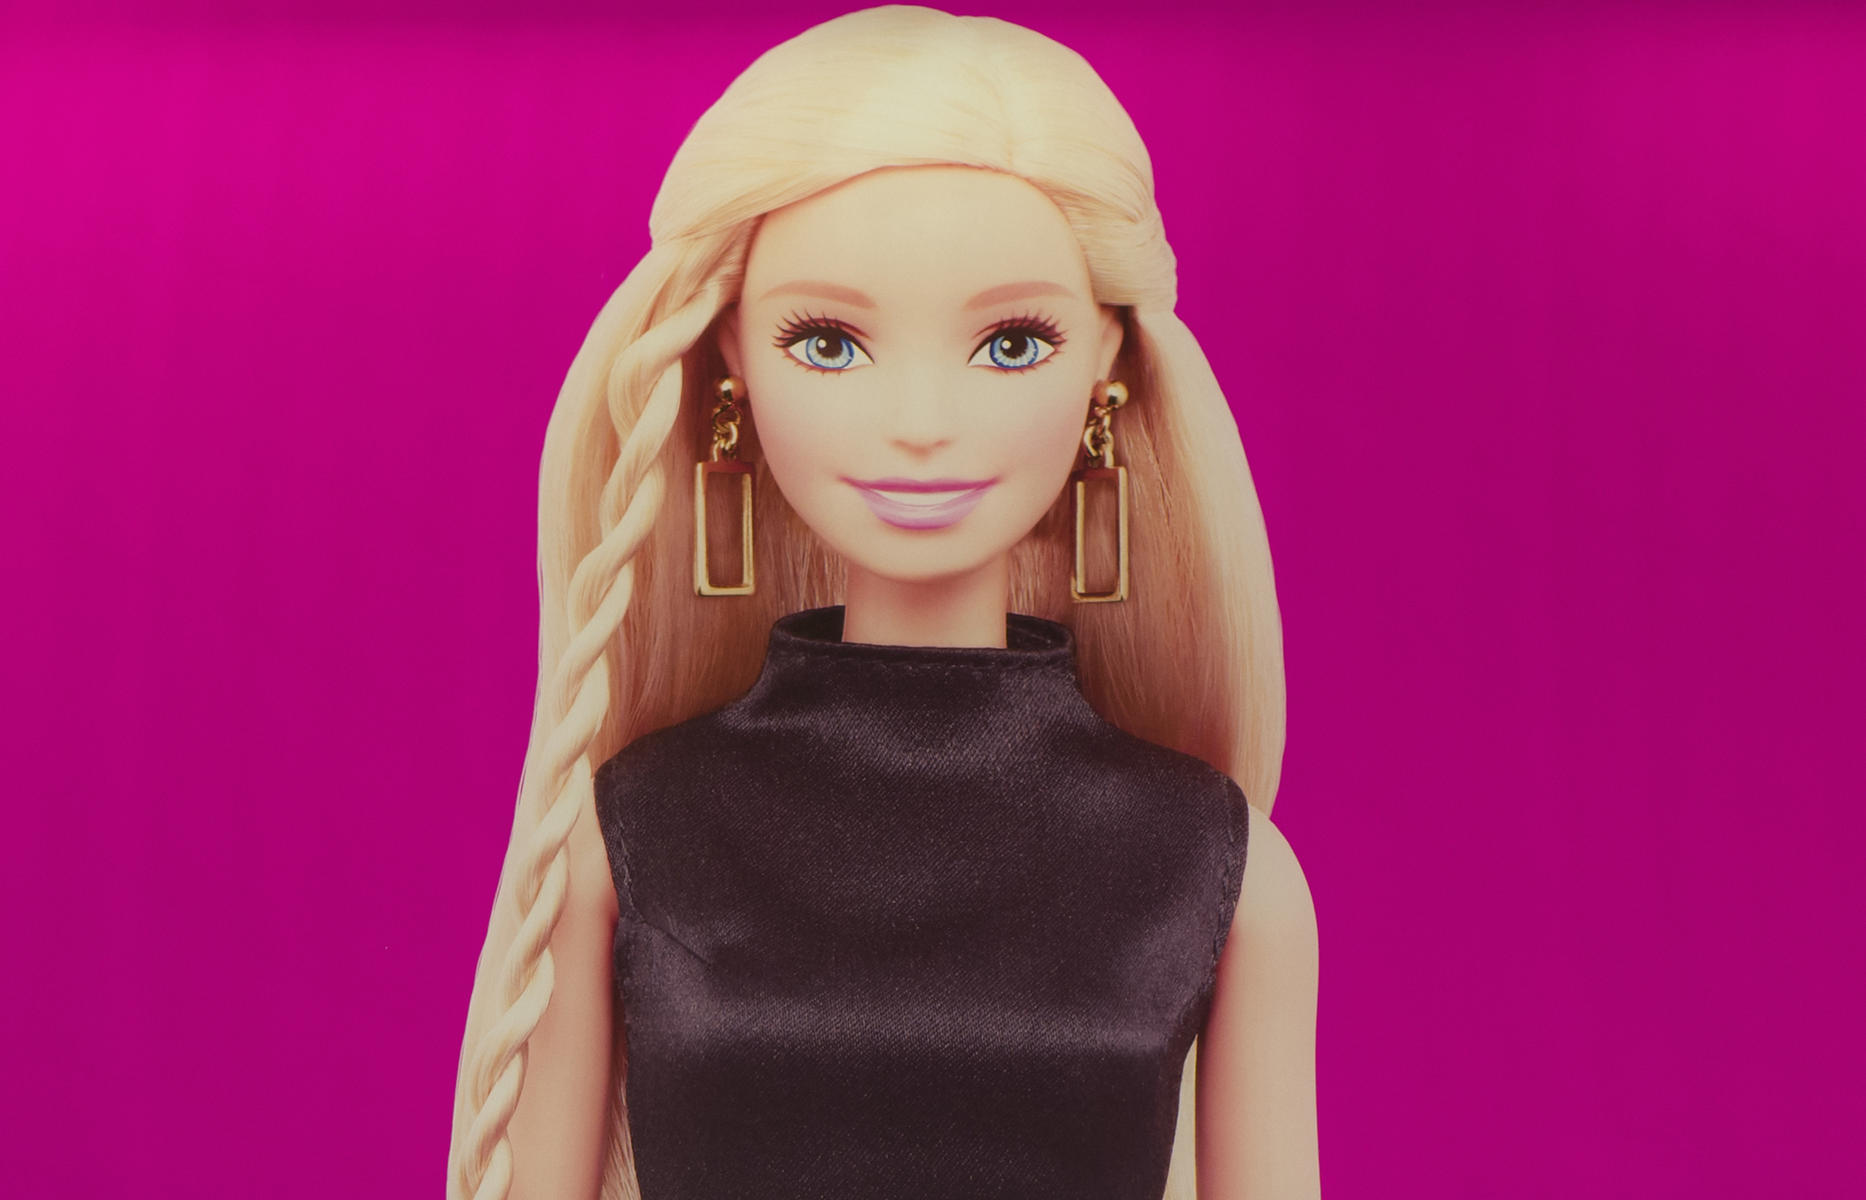 tiff the barbie is your new favorite millennial mom on instagram